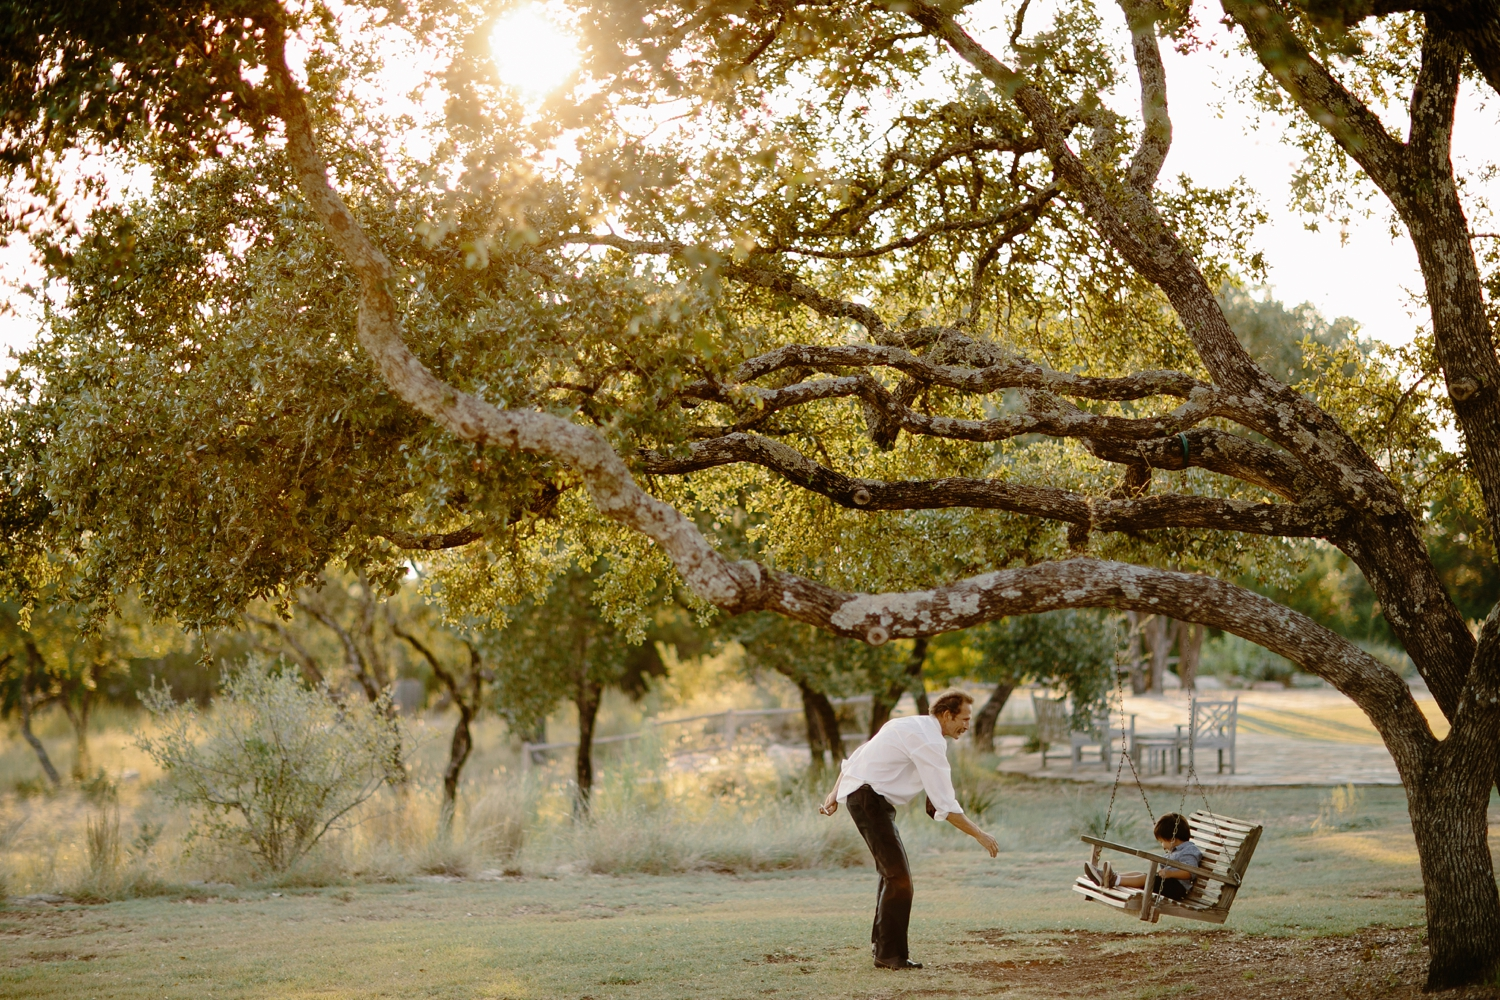 hill-country-texas-wedding-venue